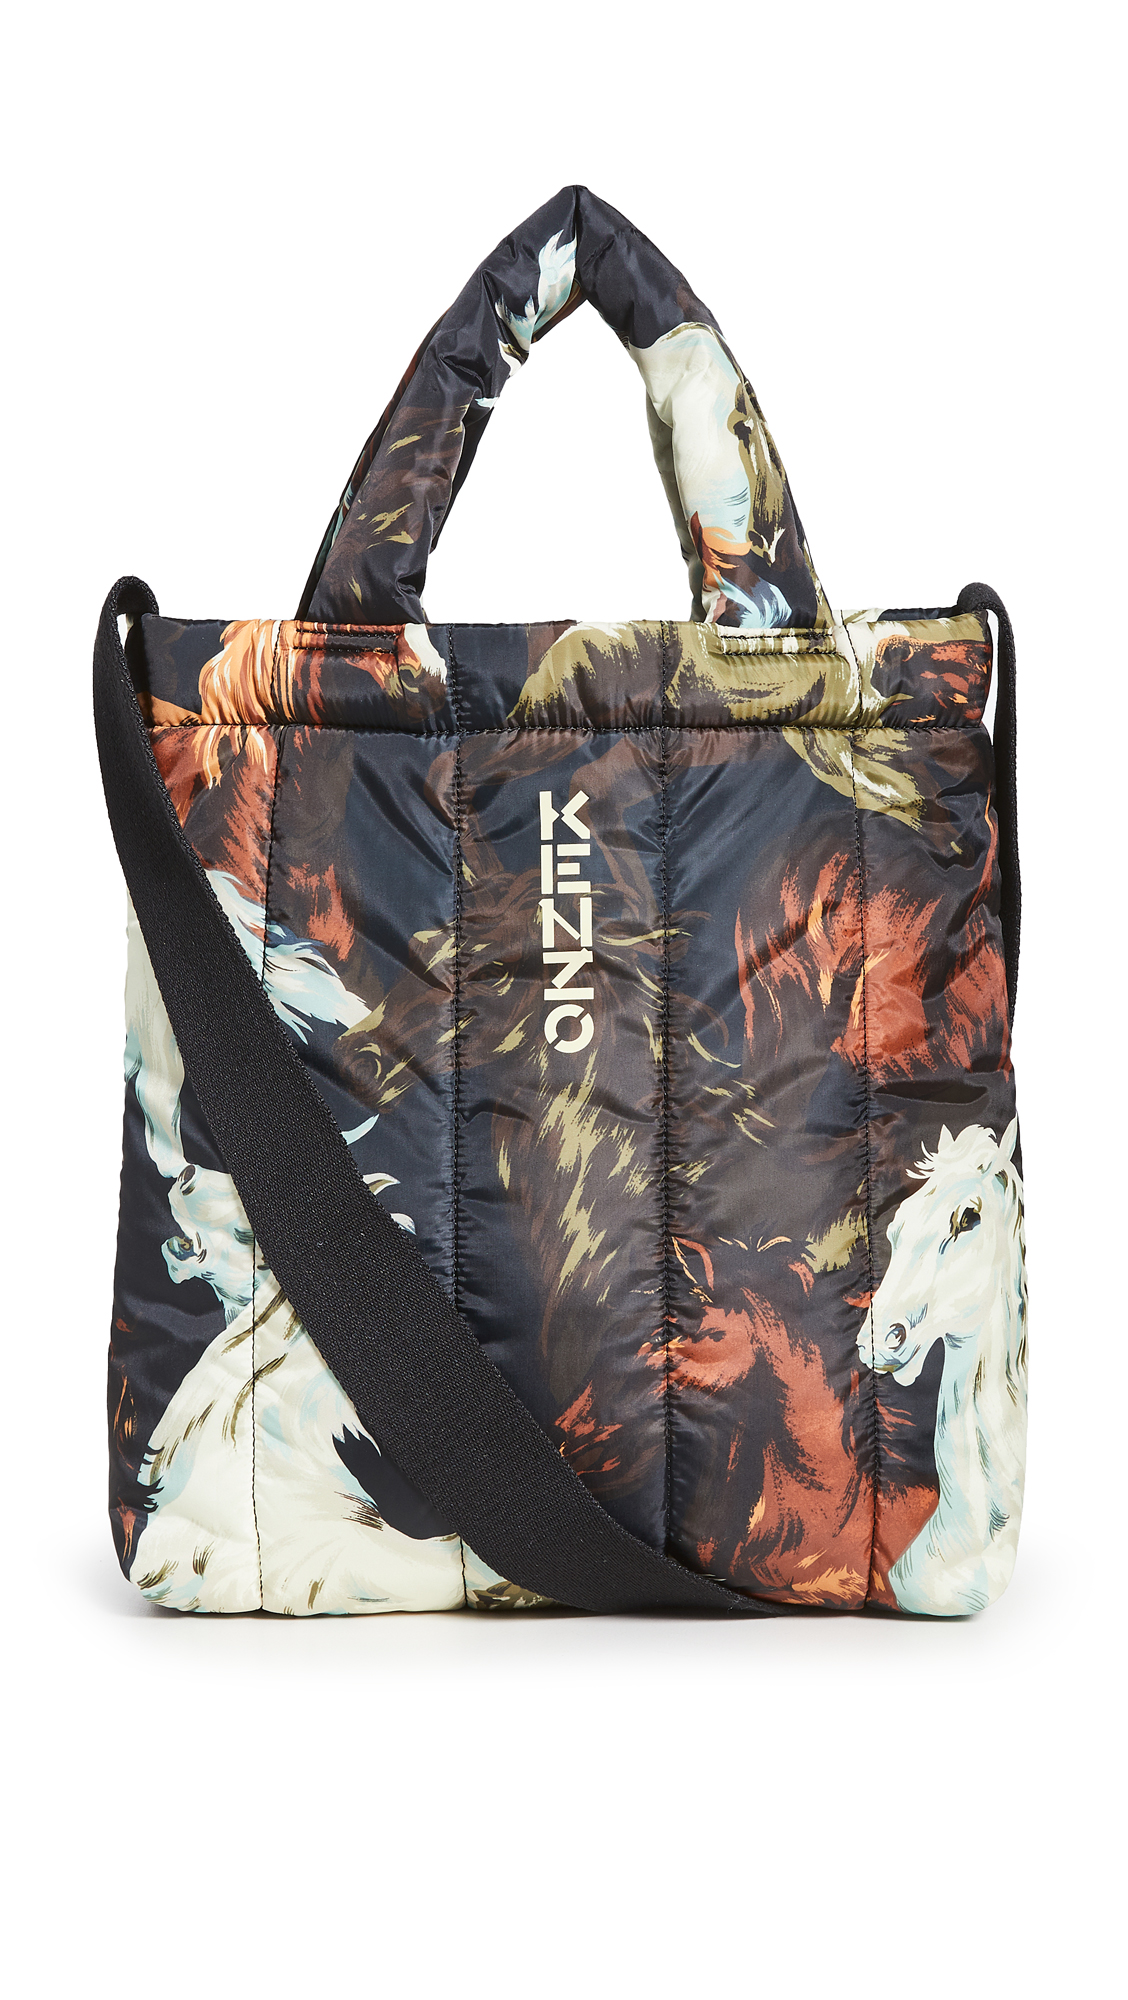 KENZO Quilted Horses Printed Tote Bag